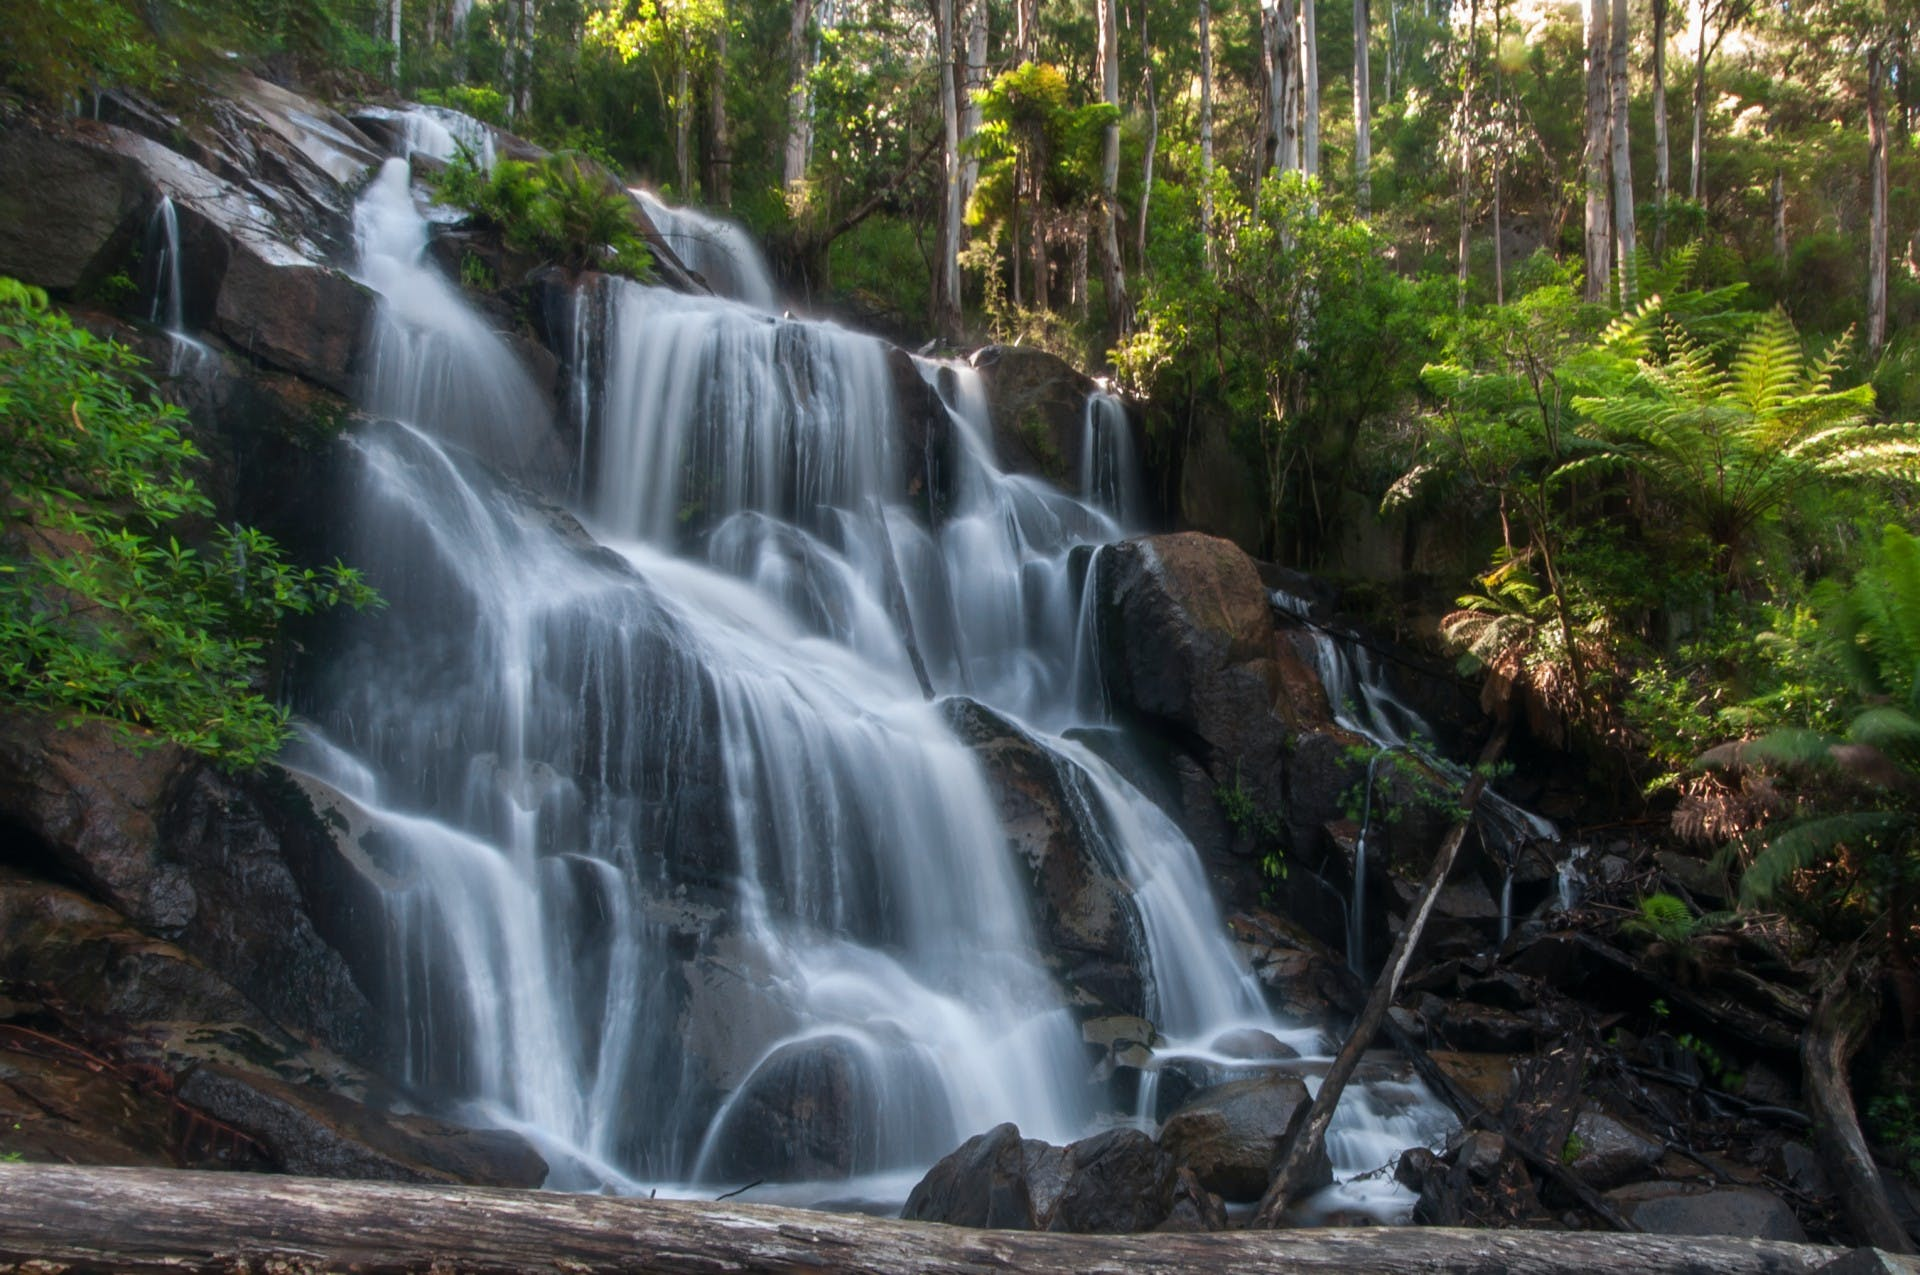 Tooronga Falls is worth a visit and only a short drive from Gracefield Estate.